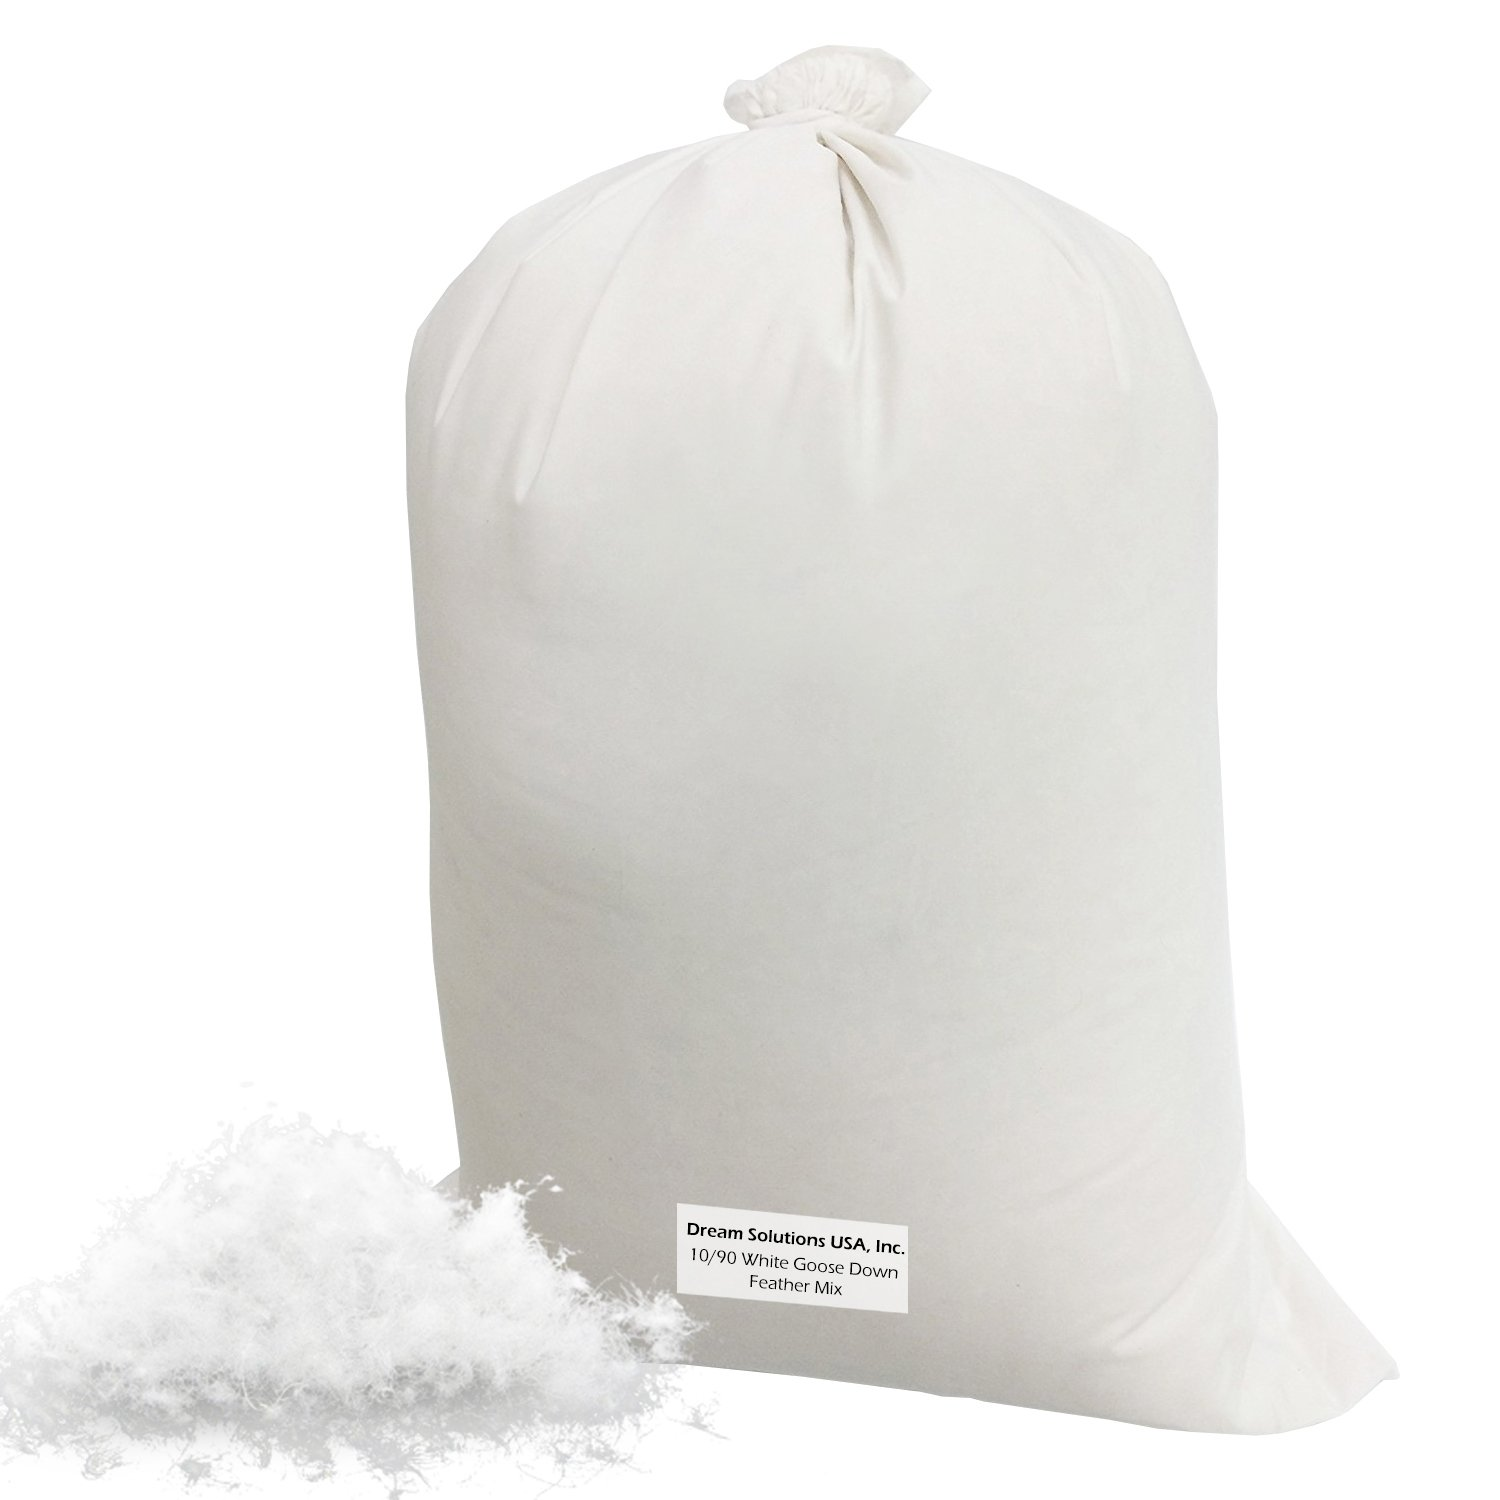 Dream Solutions USA Brand Bulk Goose Down Pillow Stuffing Feathers - 10/90 White (1 LB) - Fill Stuffing Comforters, Pillows, Jackets and More - Ultra-Plush Hungarian Softness by Dream Solutions USA